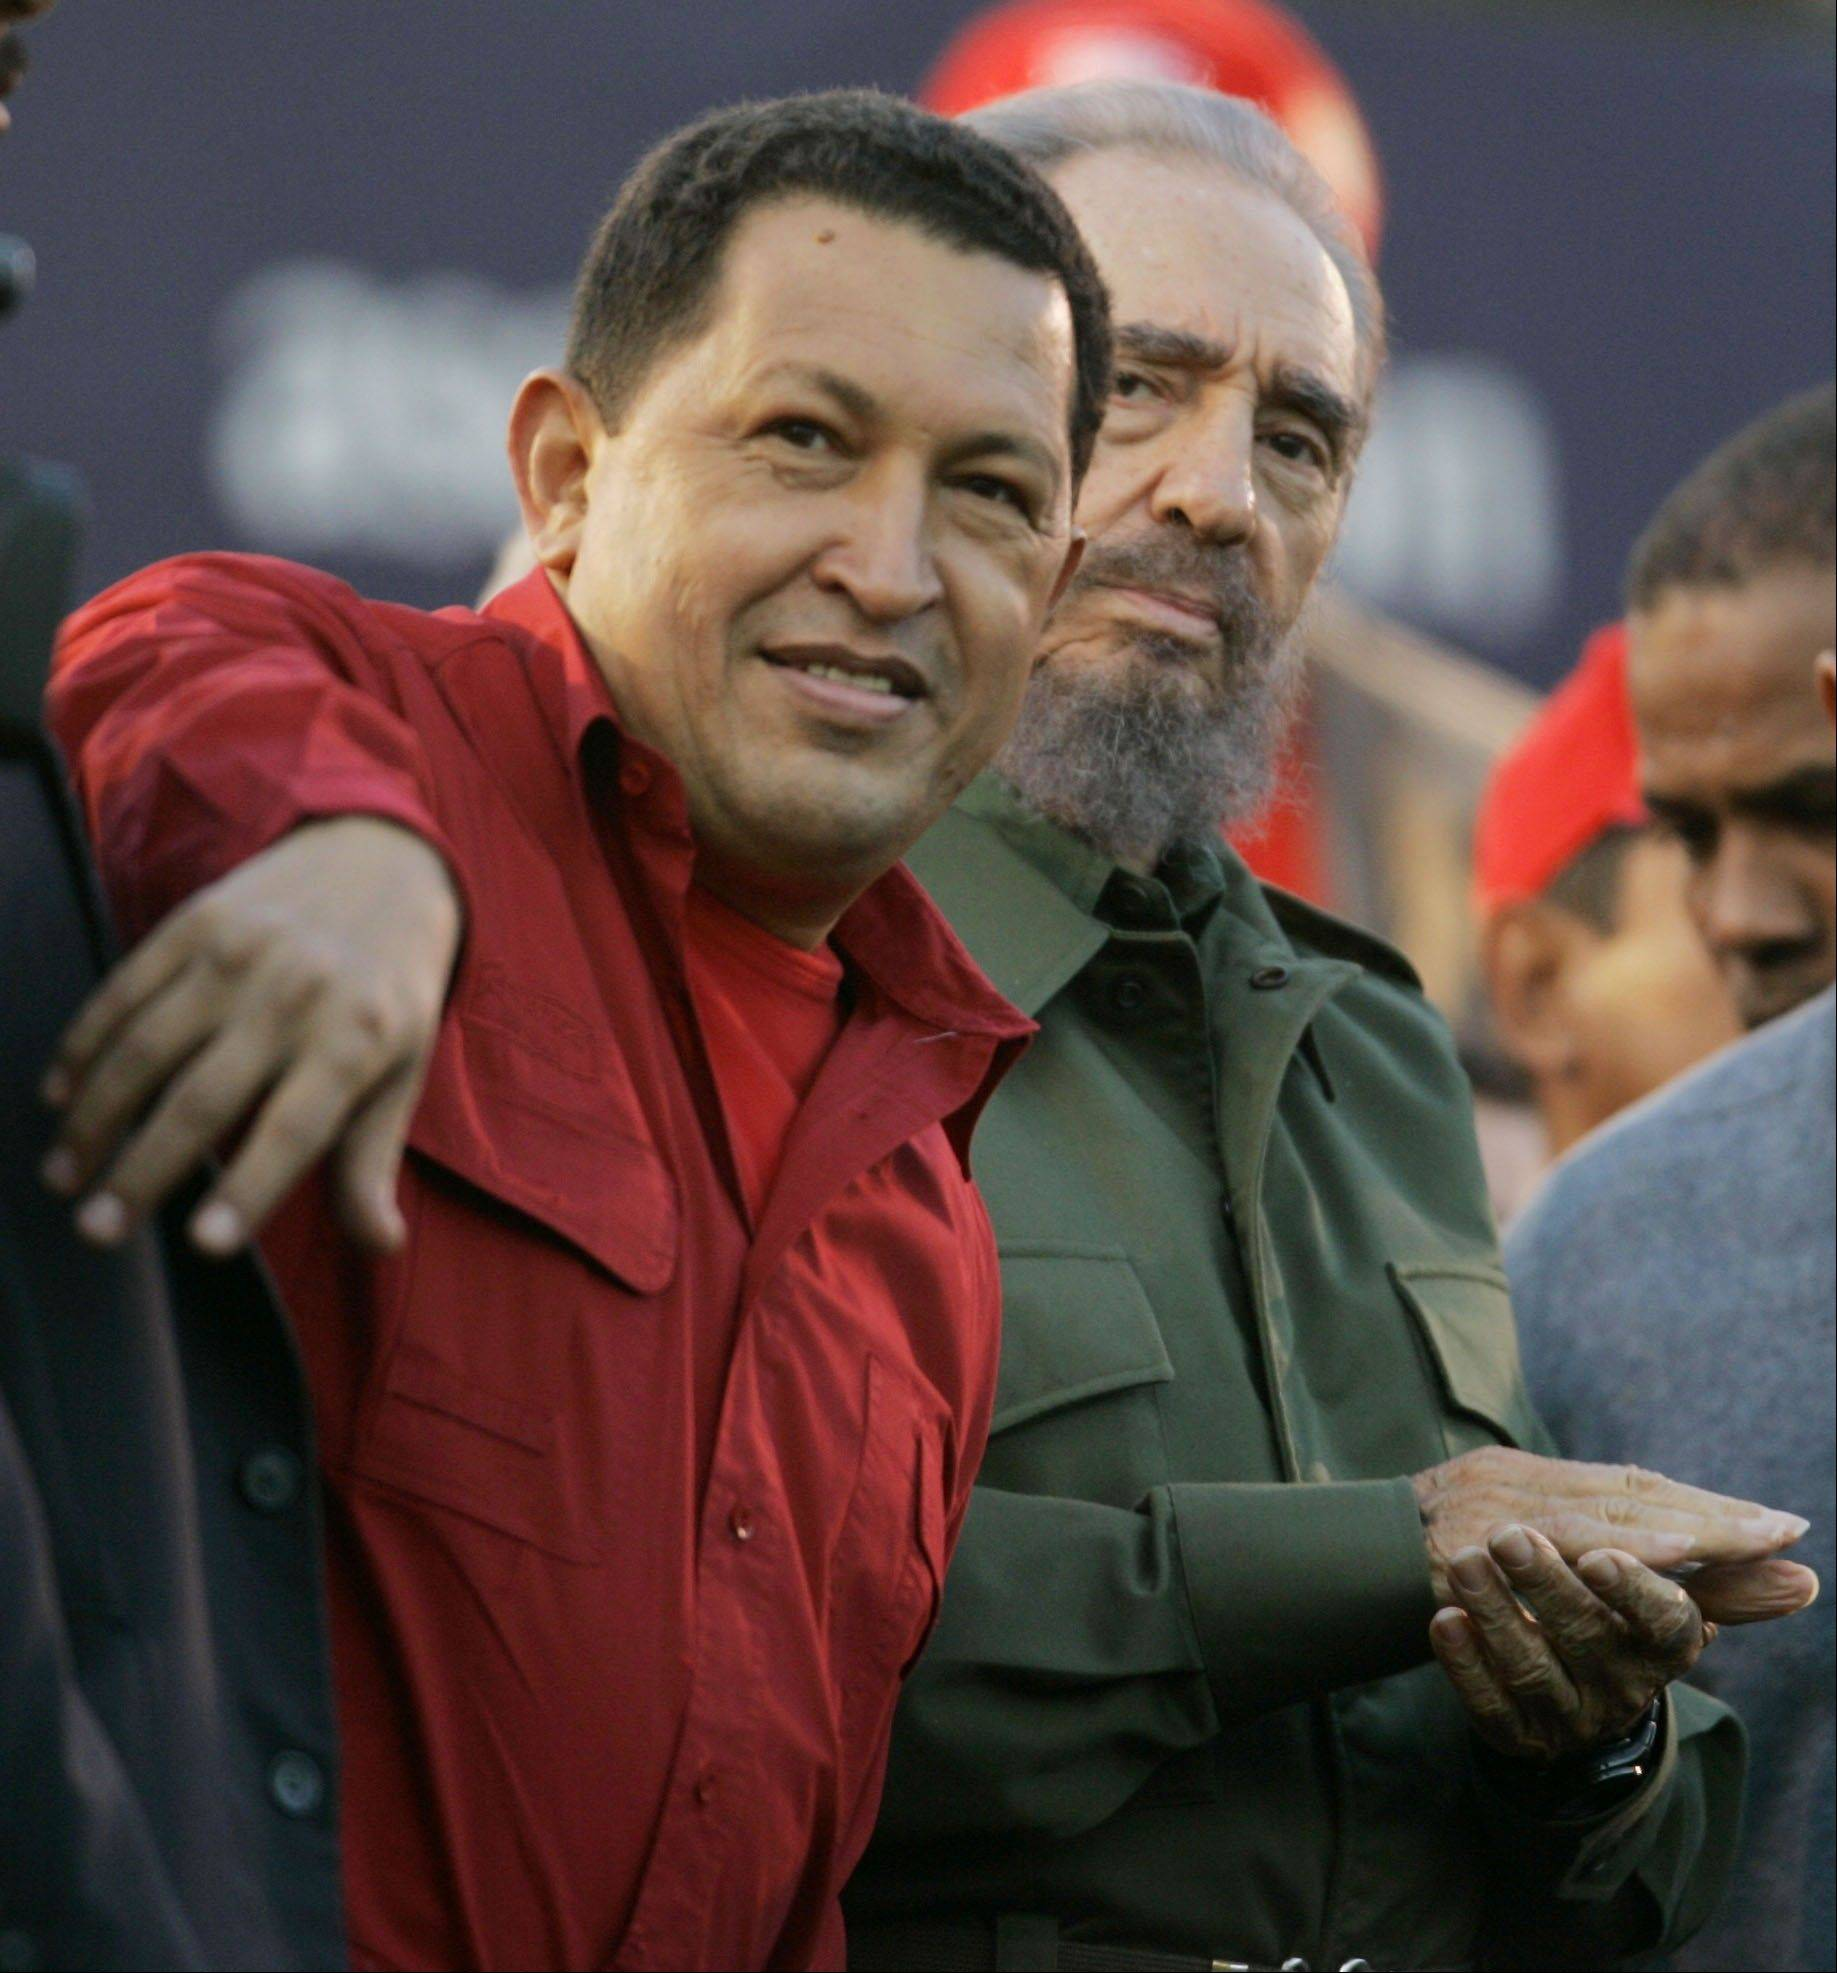 In this July 21, 2006 file photo, Venezuela's President Hugo Chavez, left, gestures as Cuba's President Fidel Castro looks on during an event in Cordoba, Argentina.